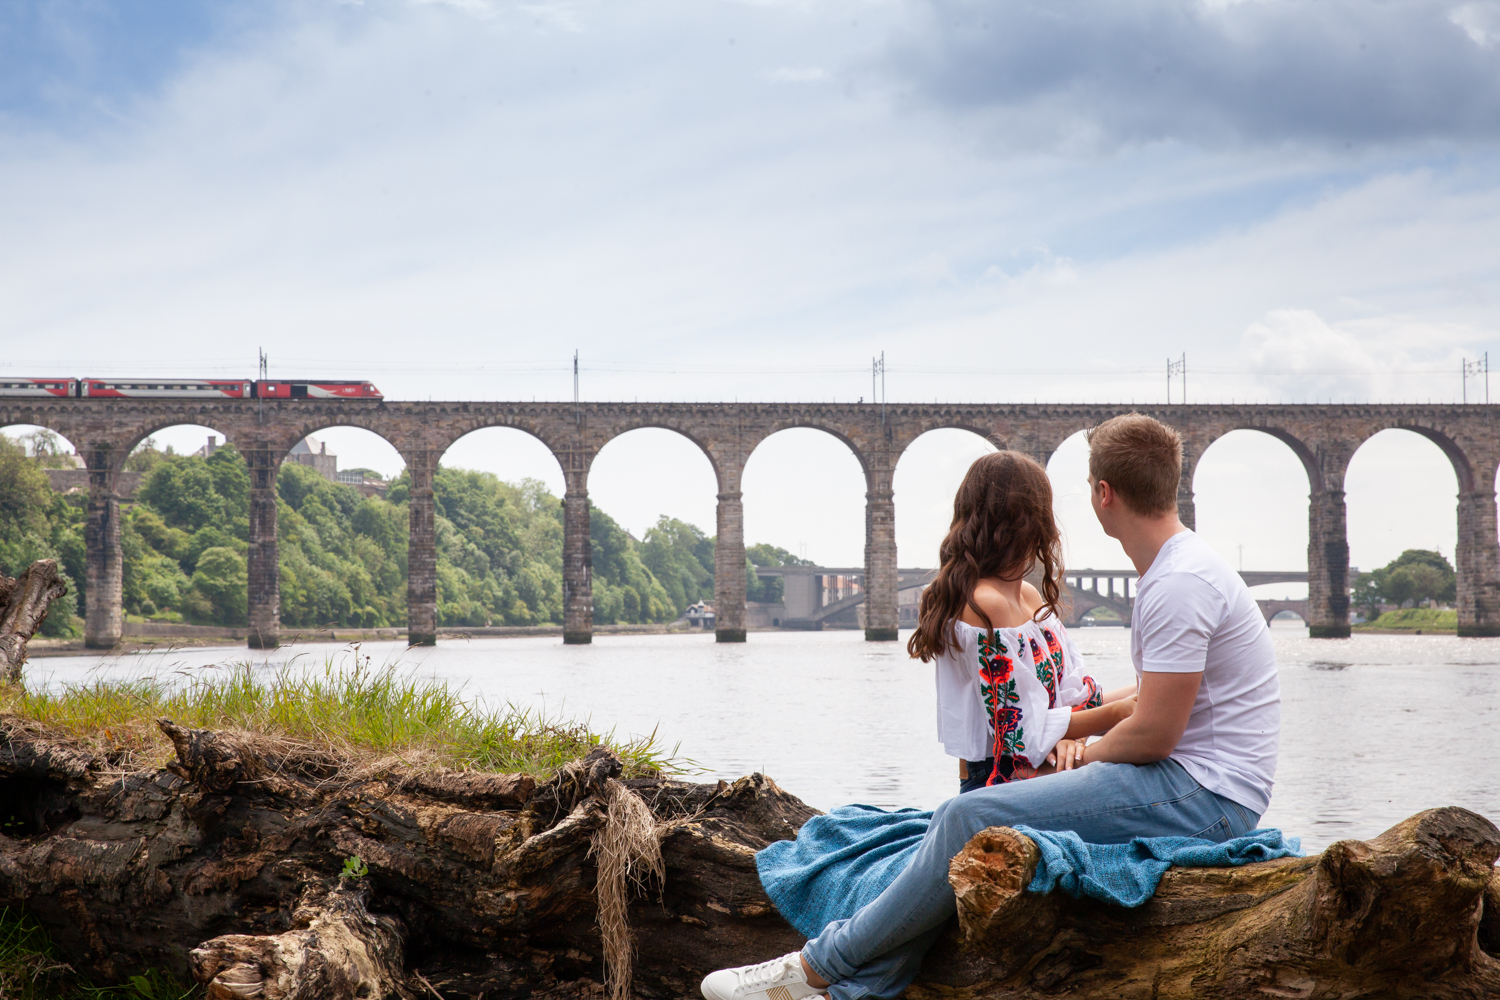 MICHAEL_ANNALISE_PRE-WEDDING_PHOTOSHOOT_BERWICK_PICTORIAL_PHOTOGRAPHY_COUPLE_RIVER_BOAT_RIVERSIDE_BRIDGES--1081.jpg